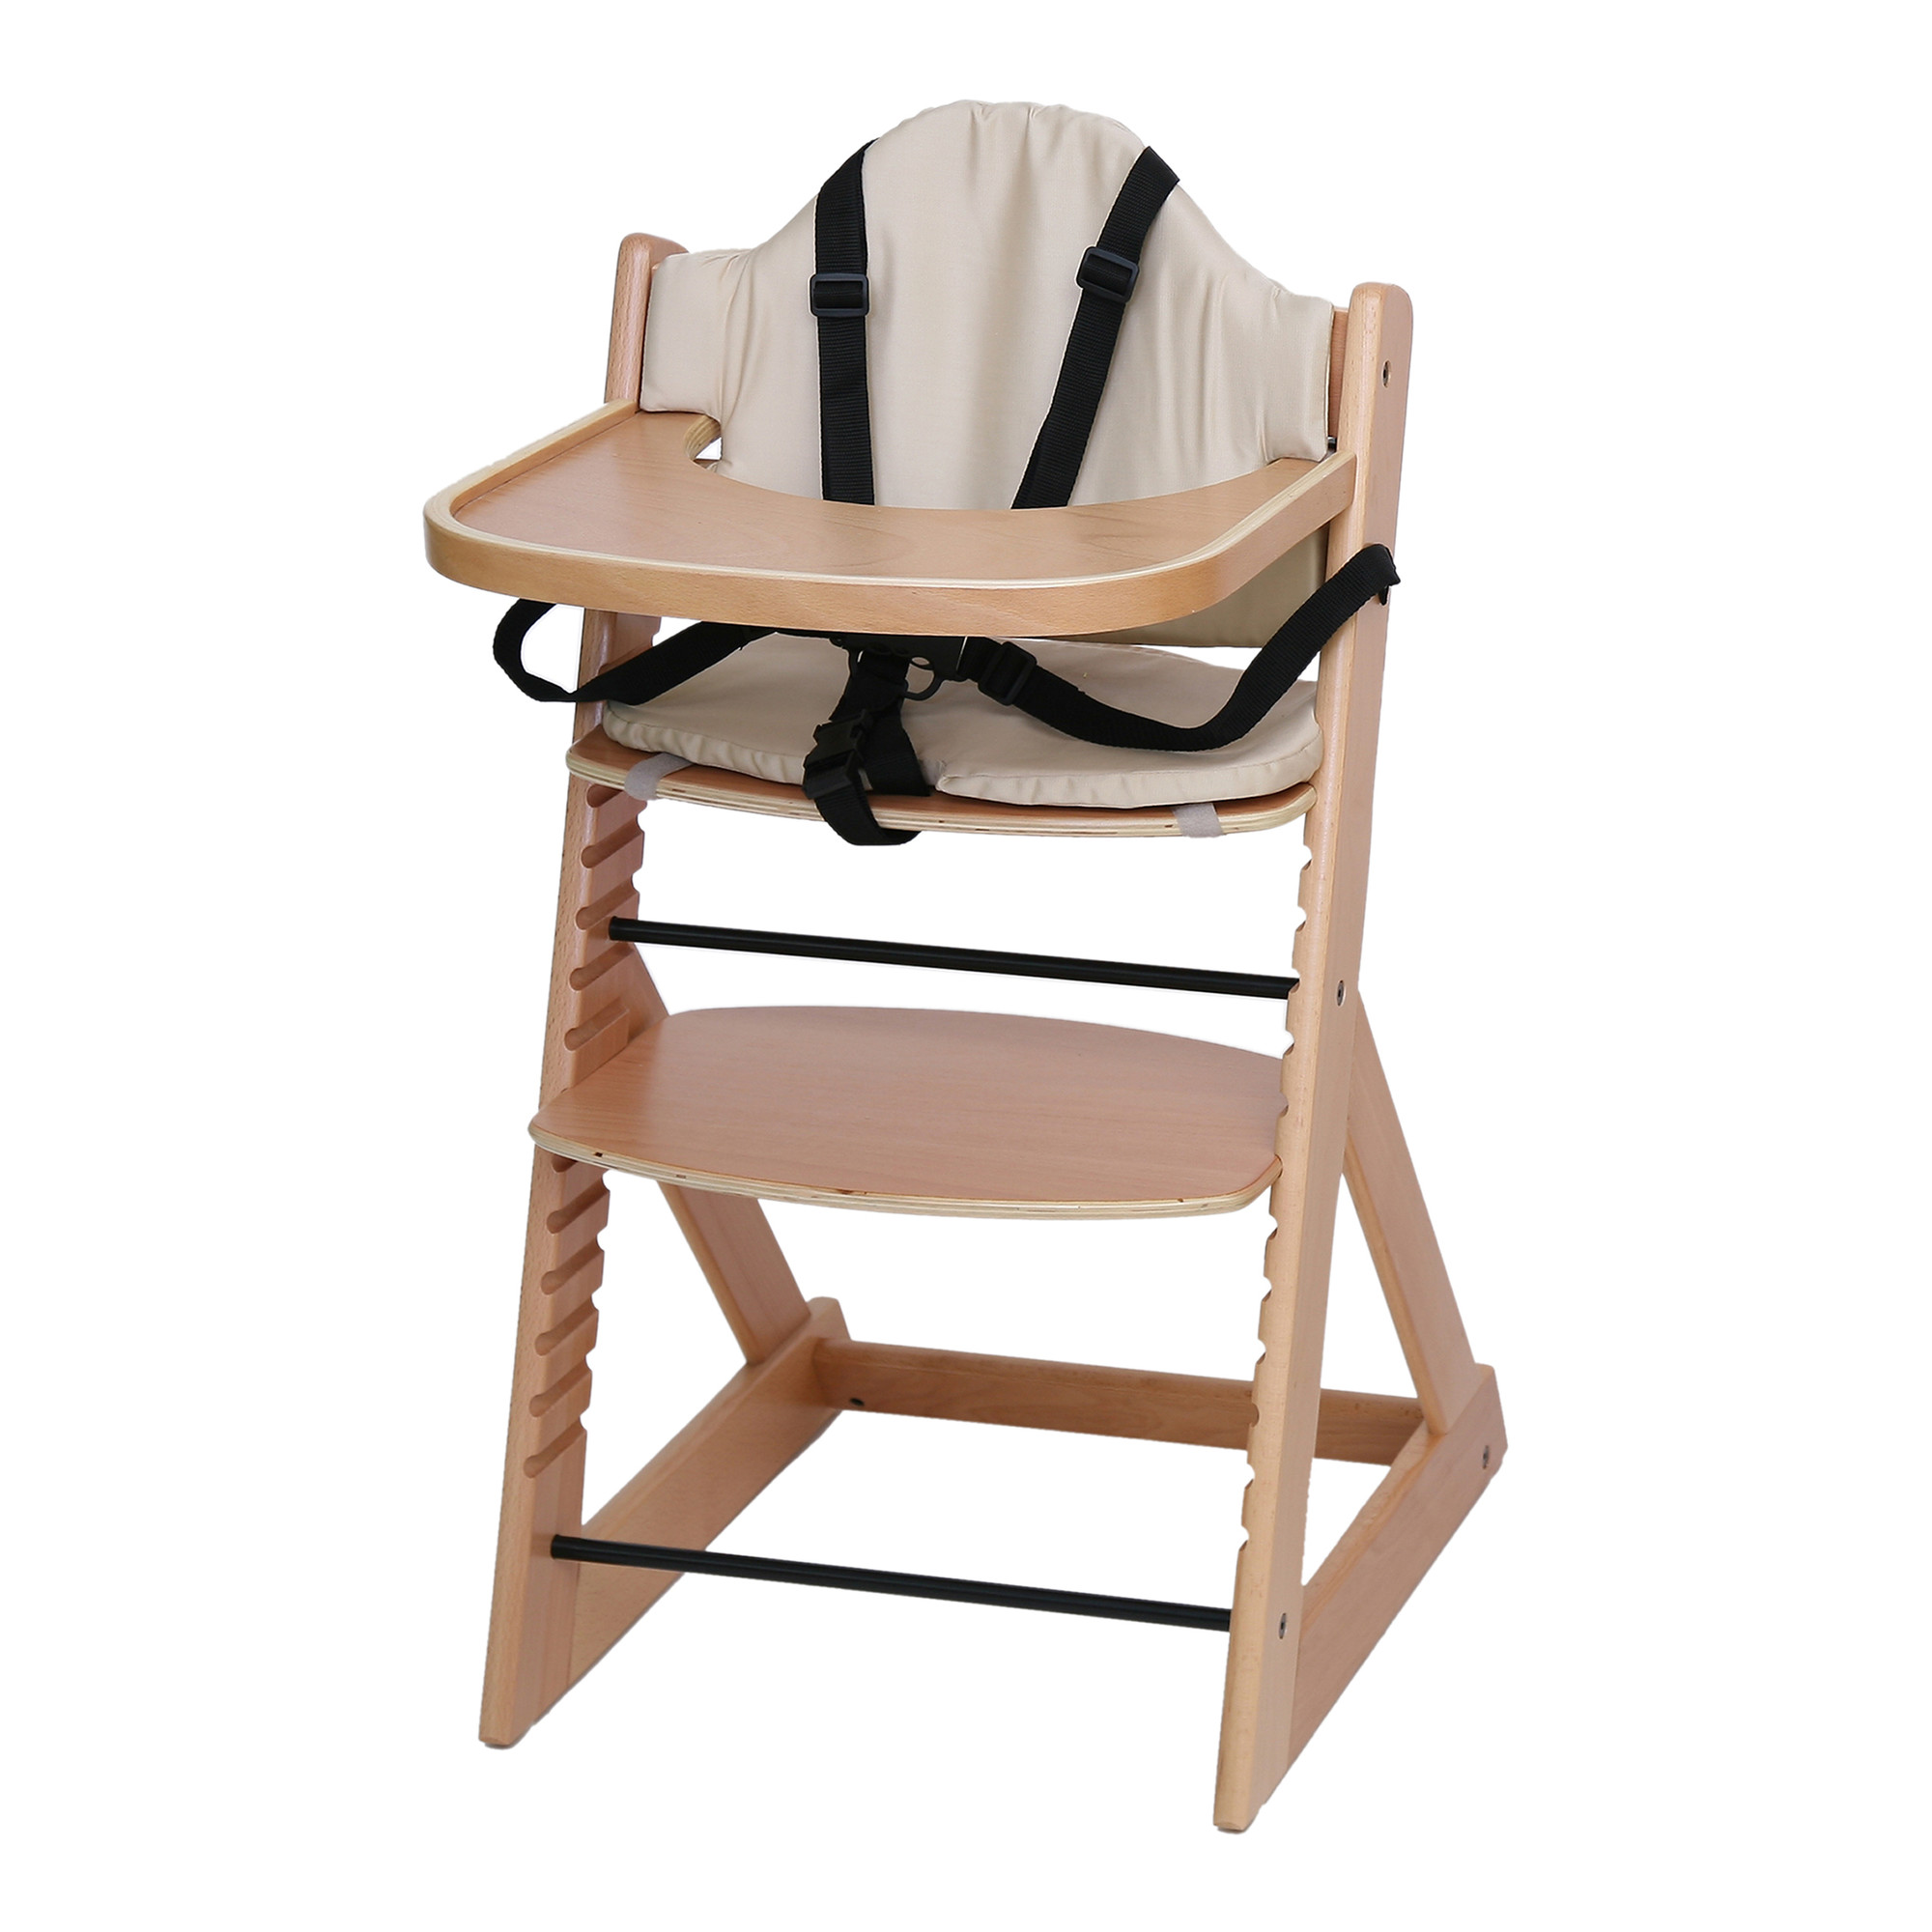 kids chairs wooden chairs rocking chairs stools temple